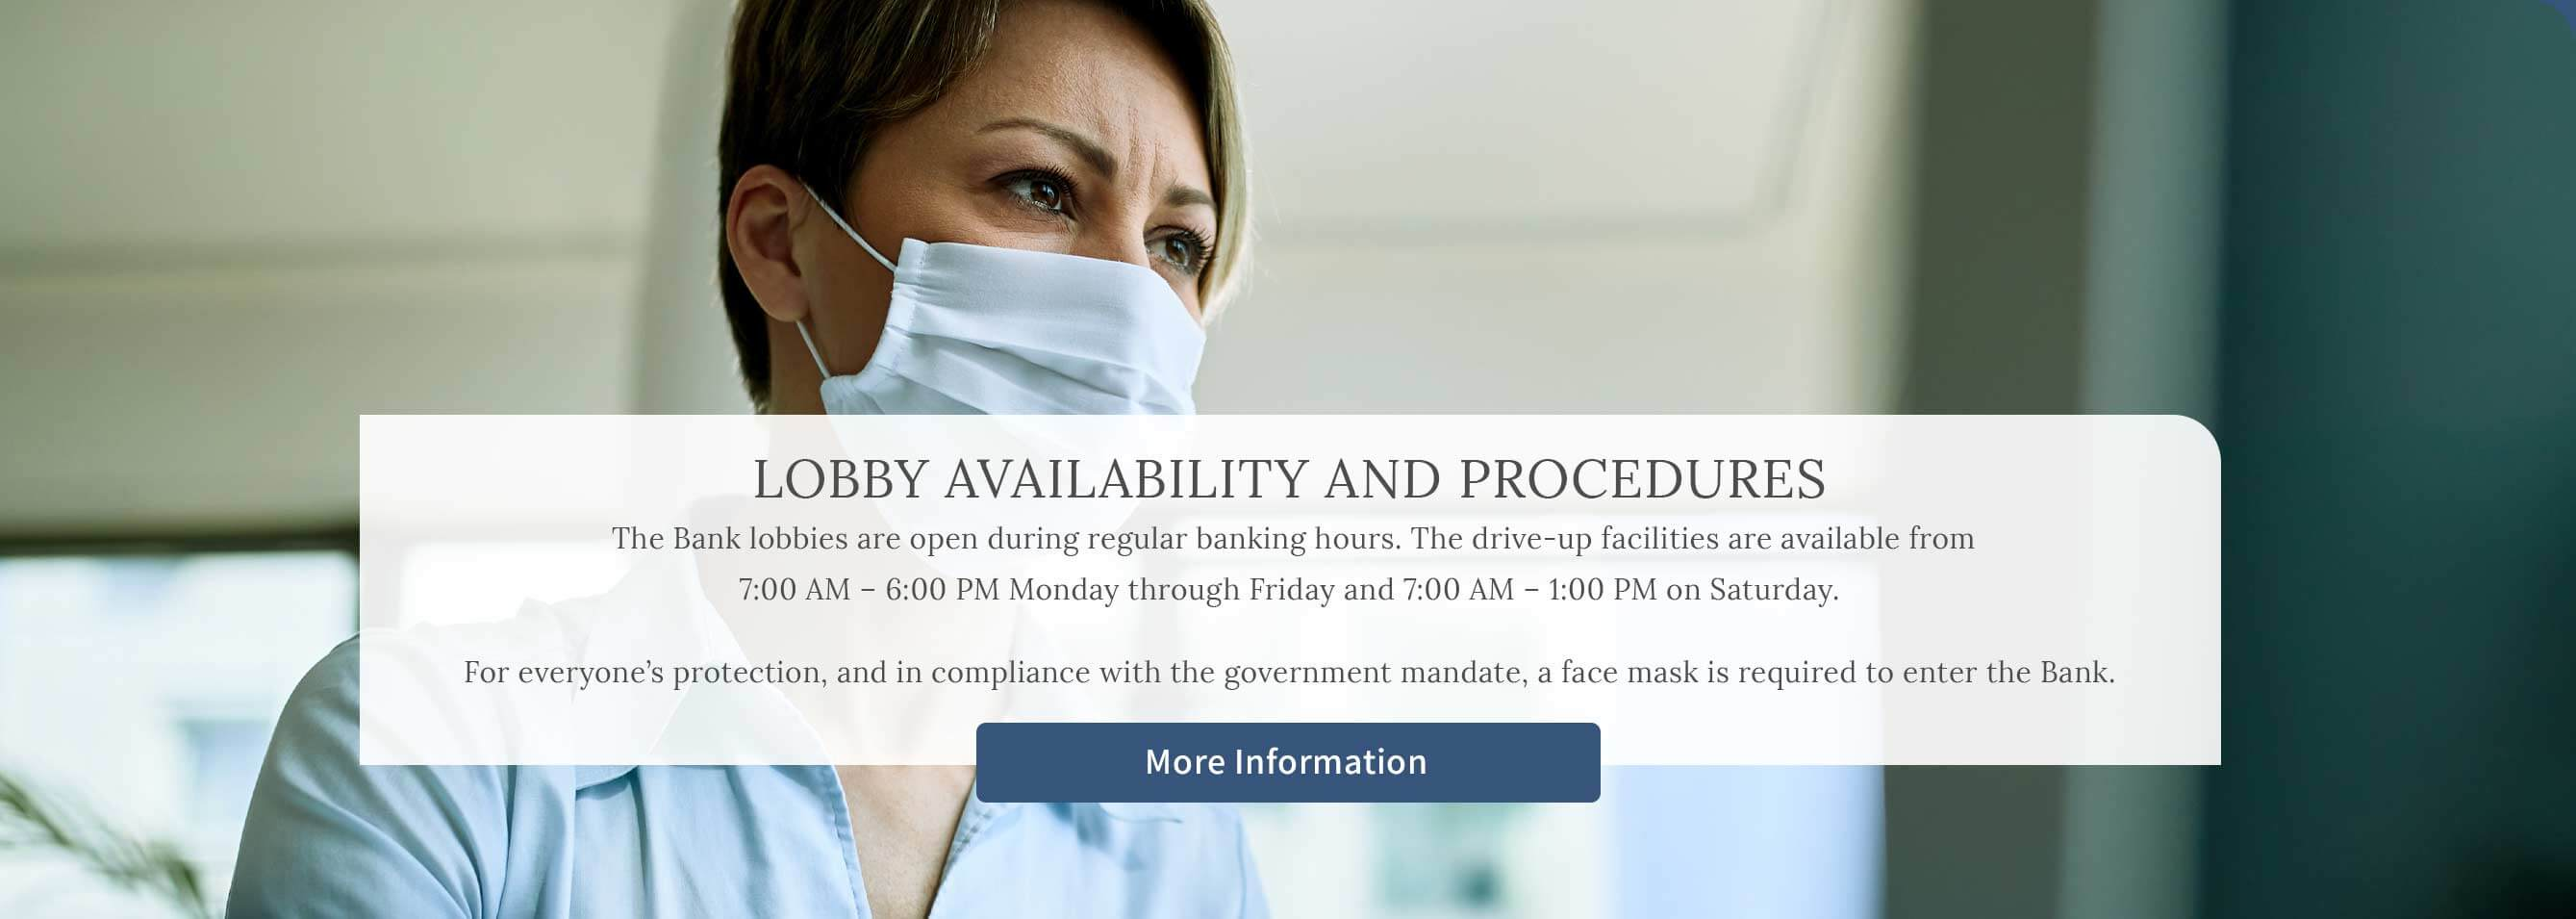 Lobby Availability and Procedures. The Bank lobbies are open during regular banking hours. The drive-up facilities are available from 7:00 AM - 6:00 PM Monday through Friday and 7:00 AM - 1:00 PM on Saturday. For everyone's protection, and in compliance with the government mandate, a face mask is required to enter the Bank.